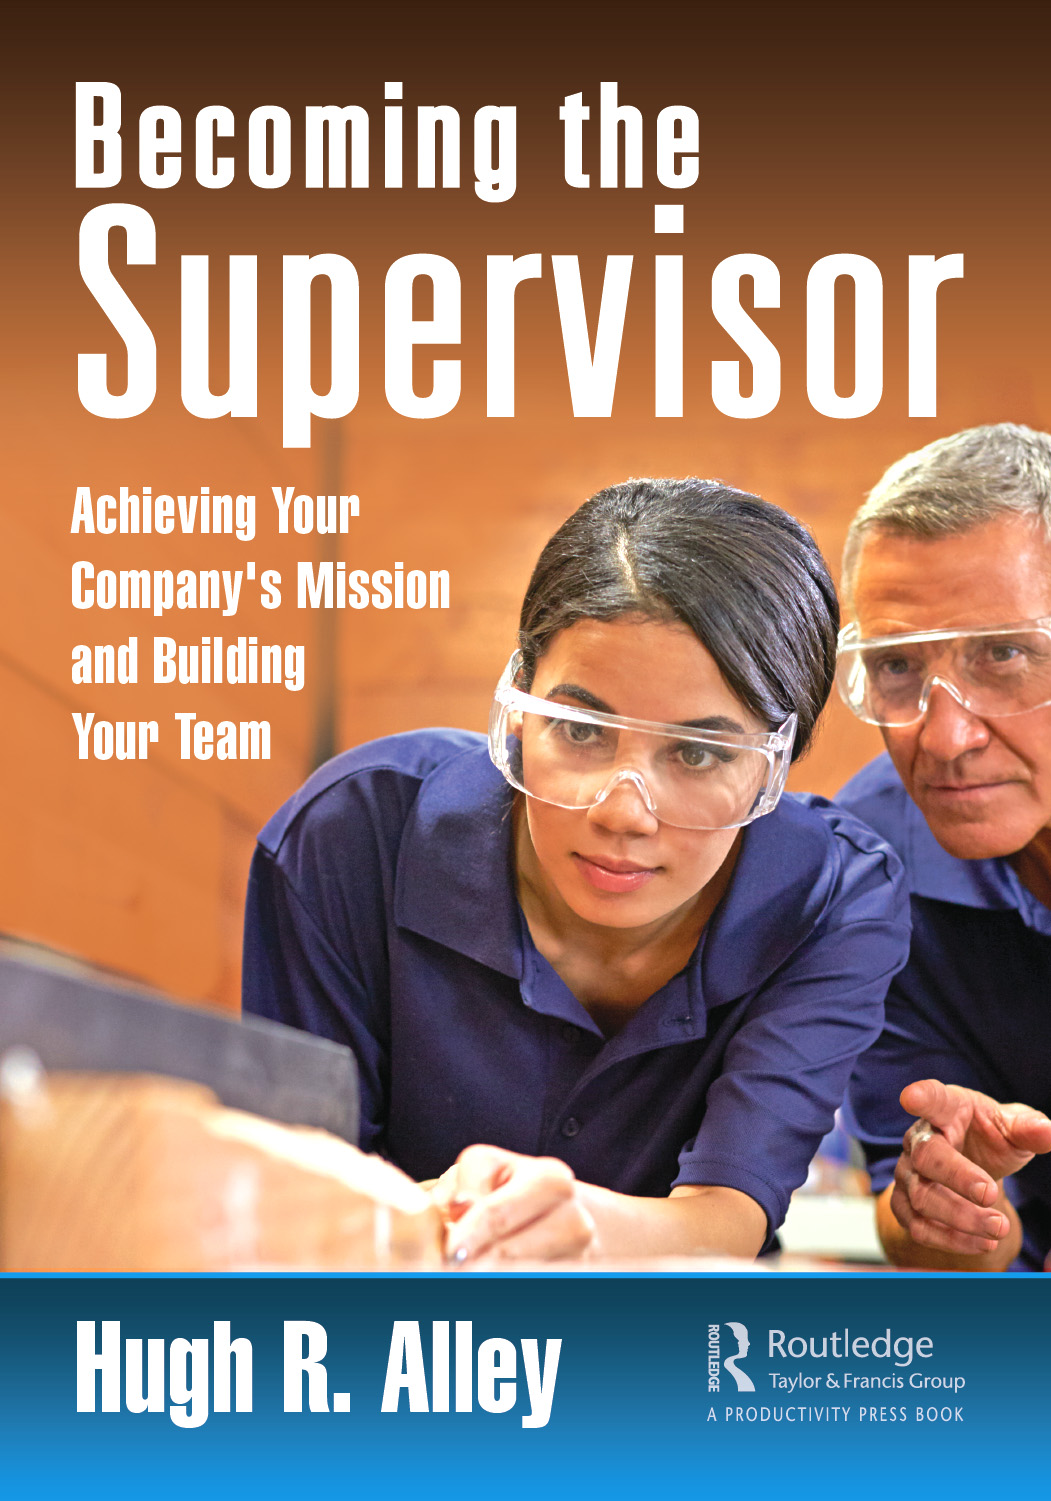 Becoming the Supervisor